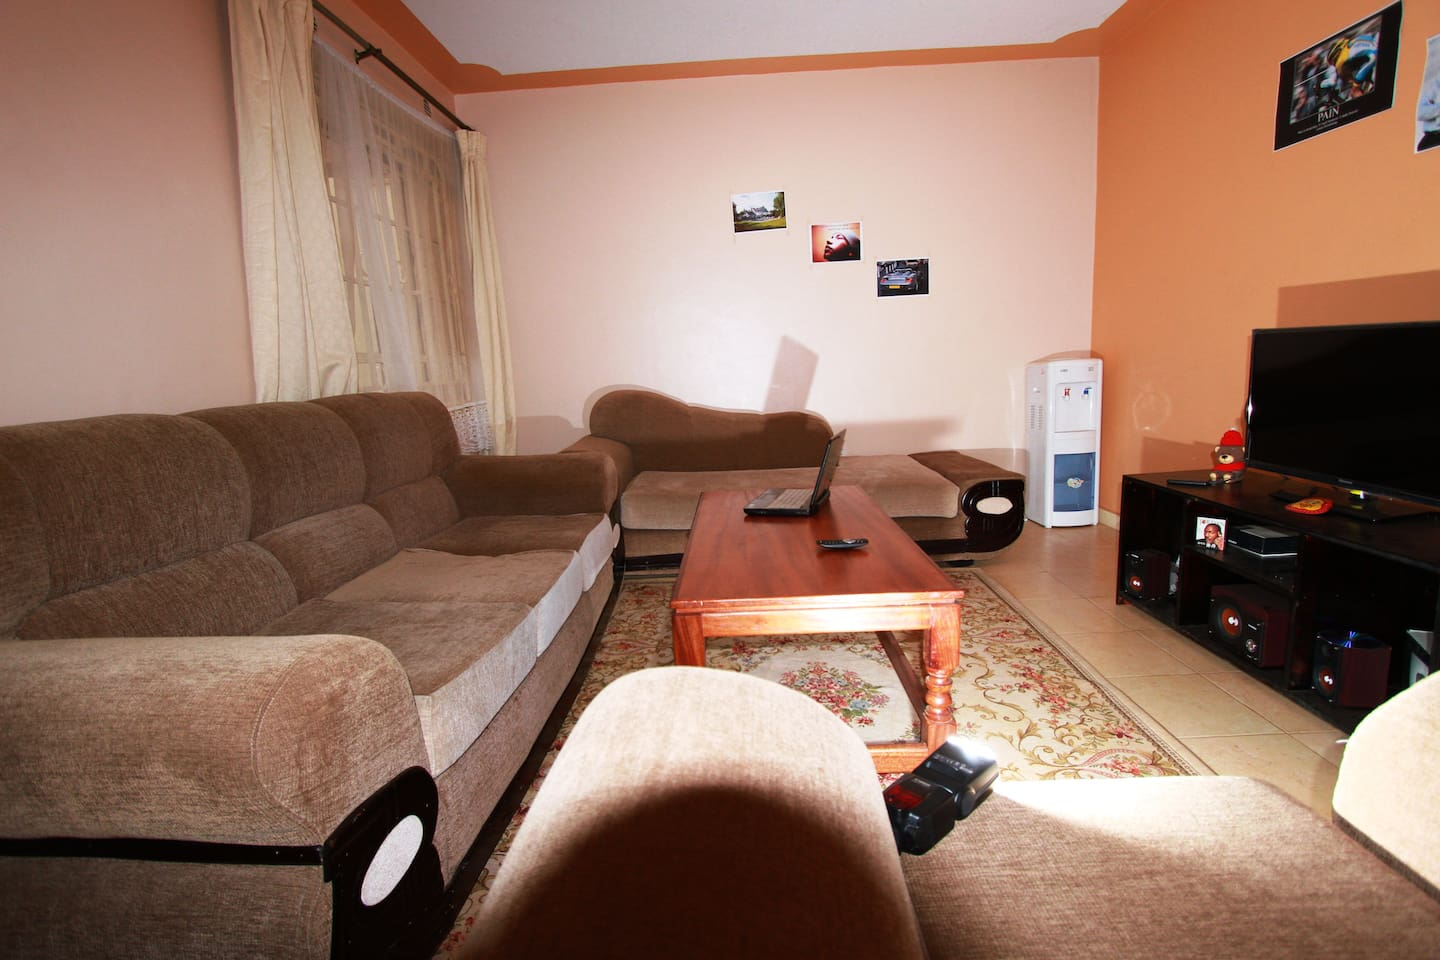 Here's the living room. It's bigger than it appears and guests tell me it looks better than the pictures.